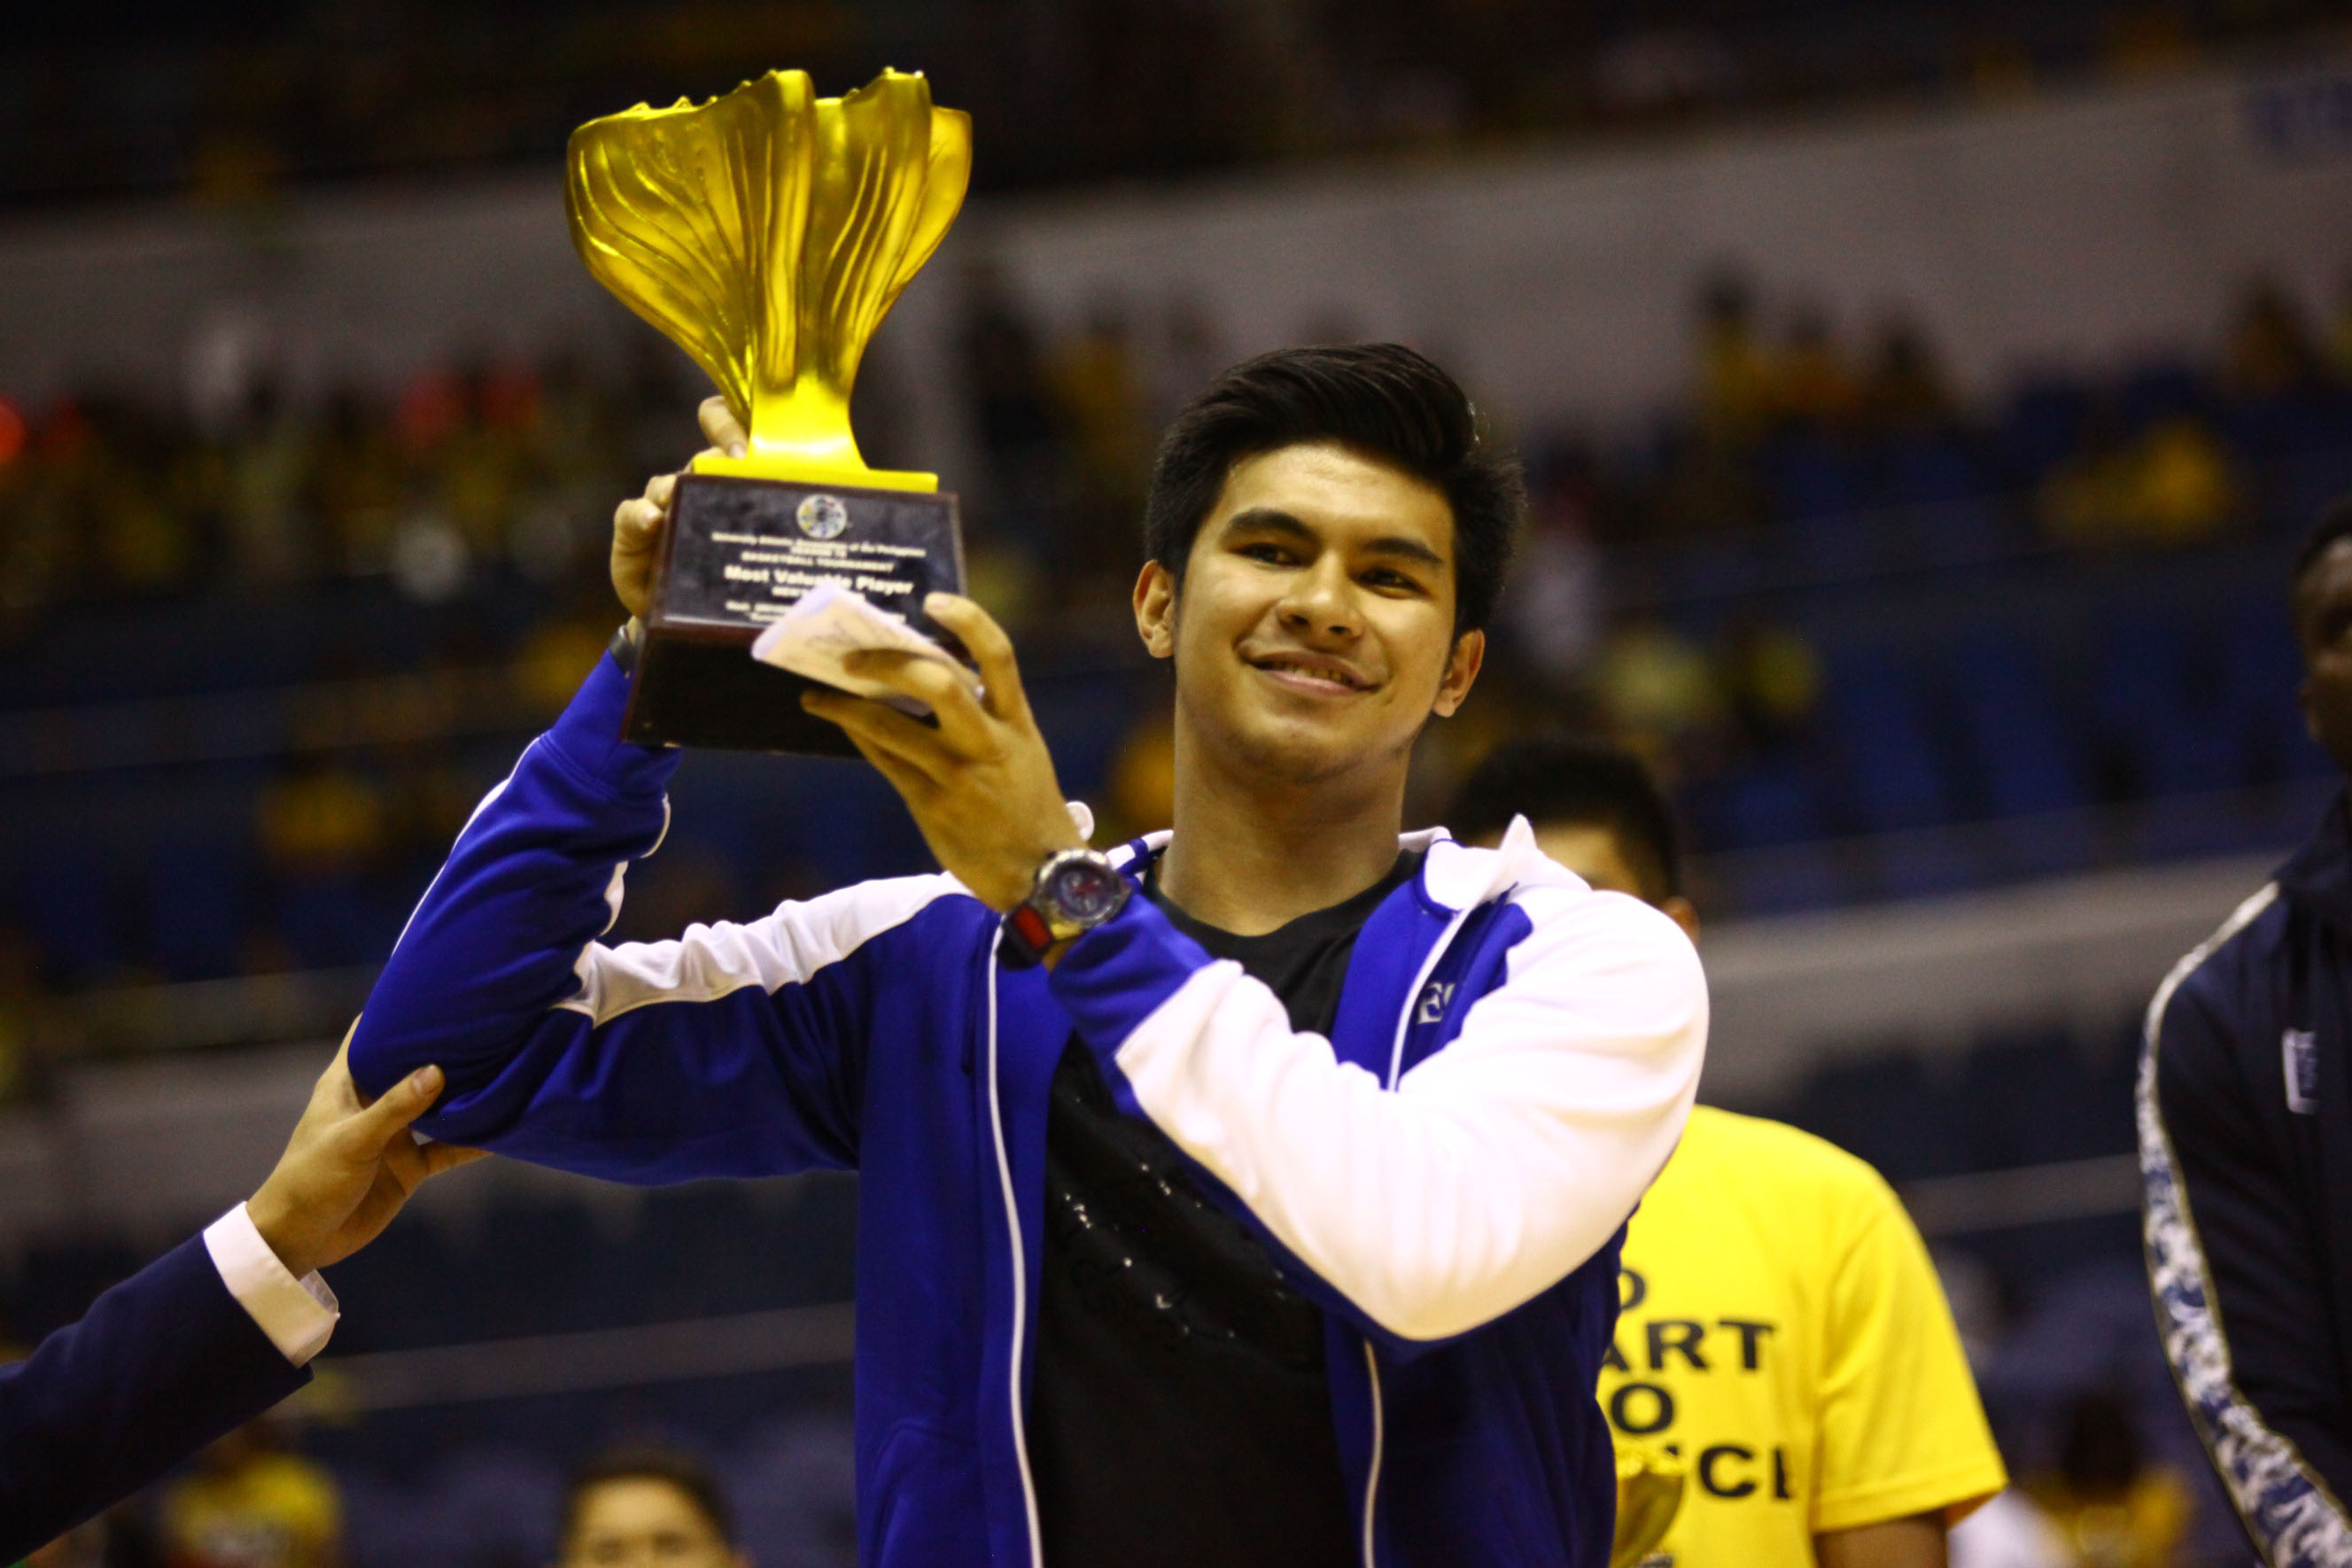 BACK-TO-BACK. Kiefer Ravena ends his UAAP career with another MVP. Photo by Josh Albelda/Rappler